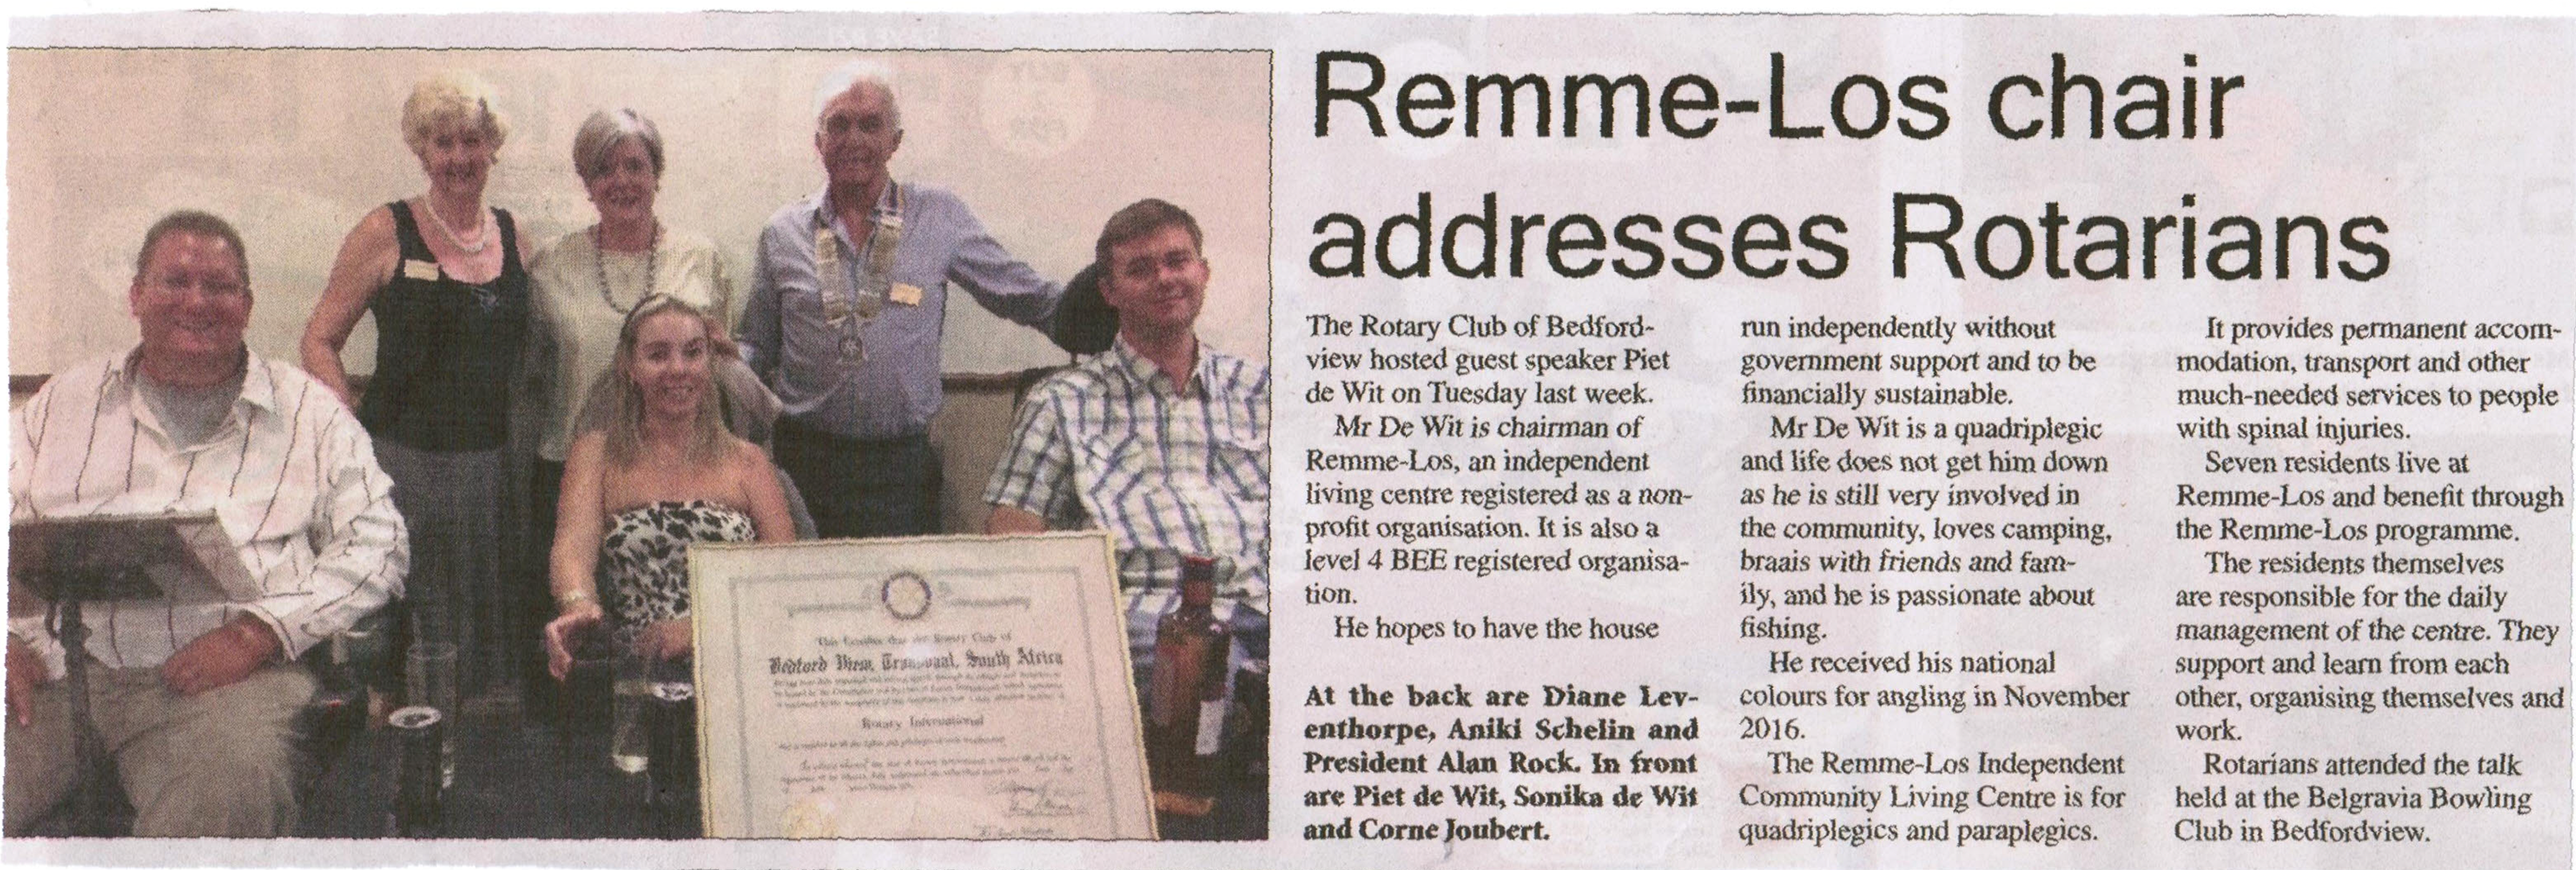 Remme-Los chair addresses rotarians